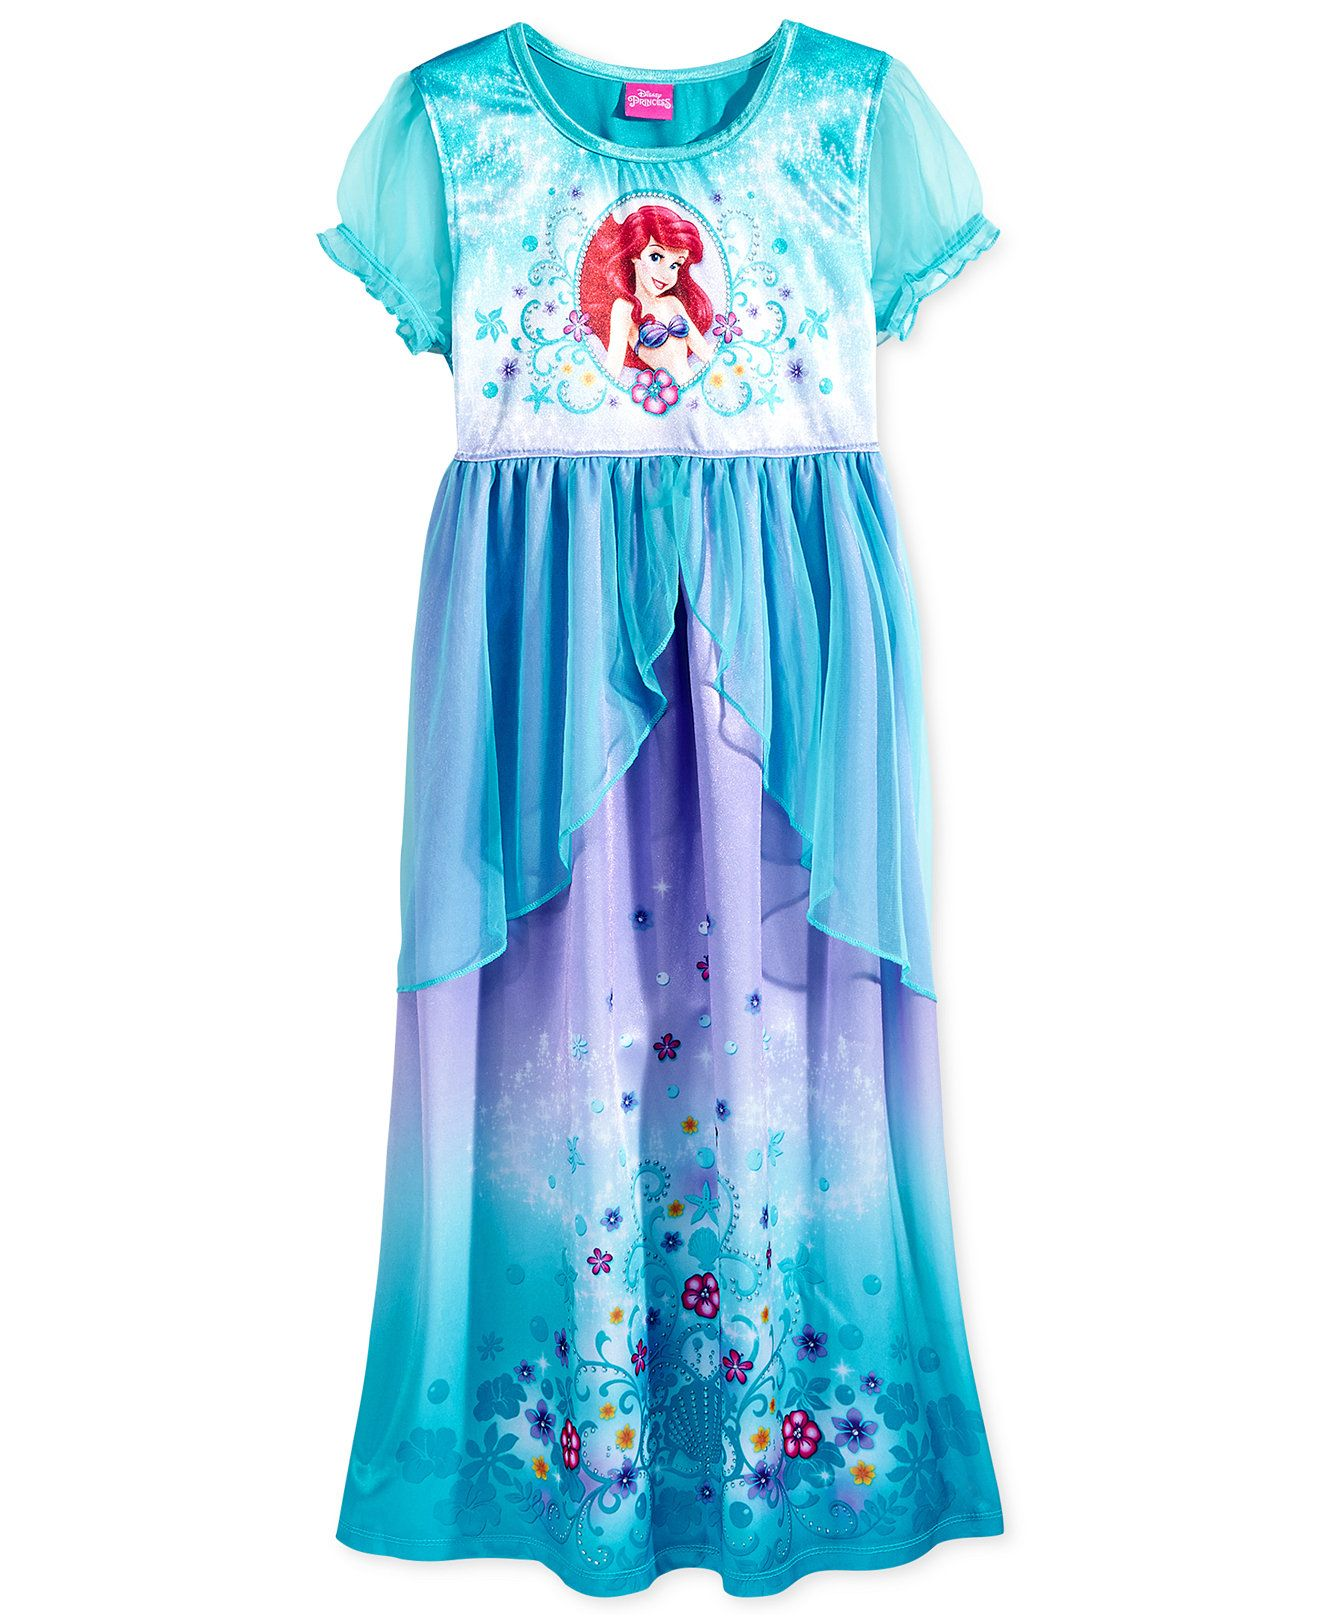 00eb6281c5 Disney Princess Girls  or Little Girls  Ariel Nightgown - Kids Pajamas -  Browse - Macy s